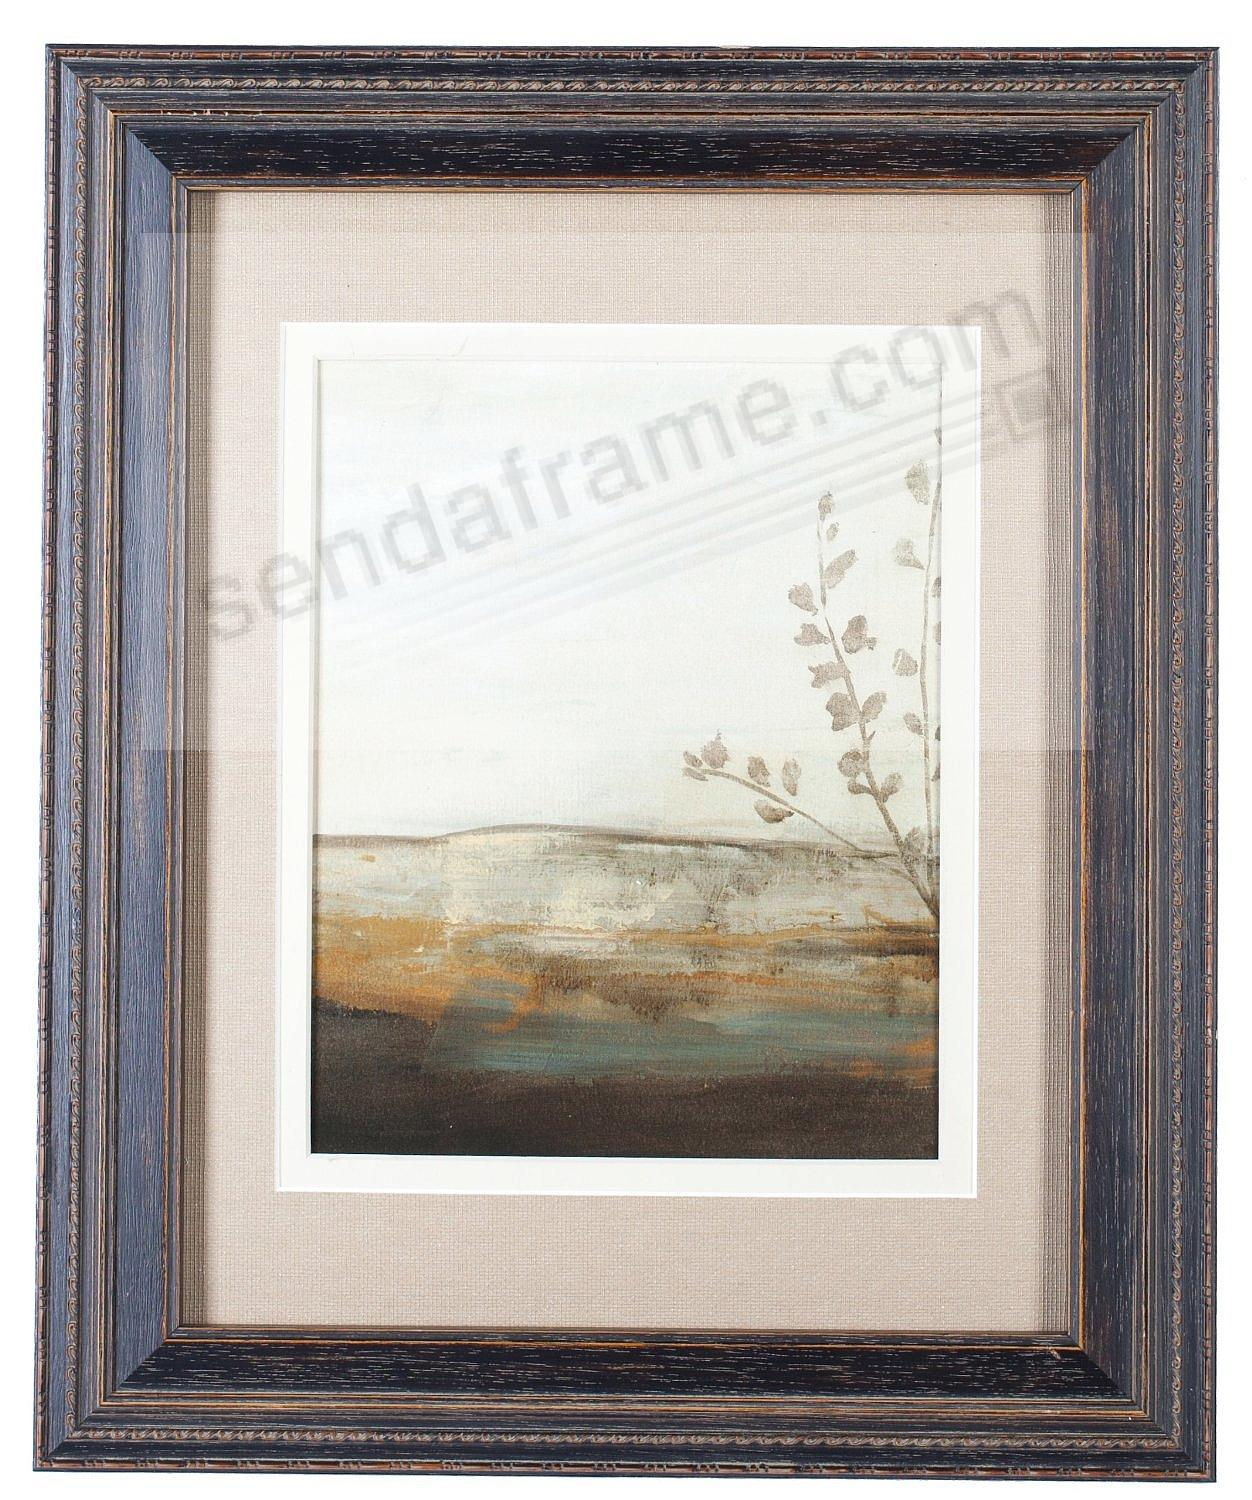 Distressed Brown MILAN matted wood frame 8x10/5x7 from ARTCARE by ...